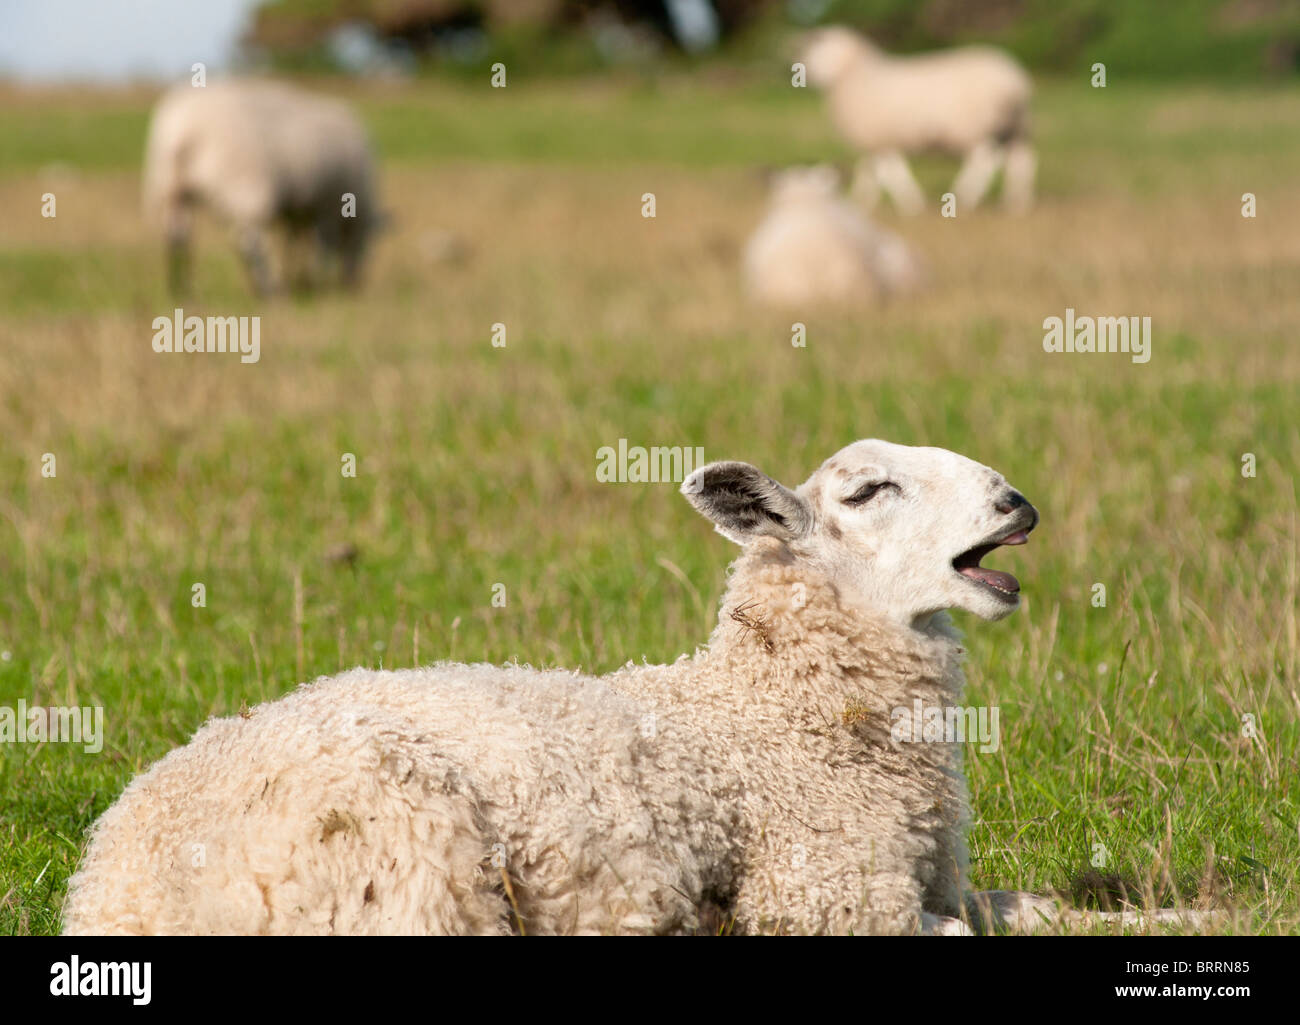 Funny sheep bleating in a field in Northumberland, England - Stock Image